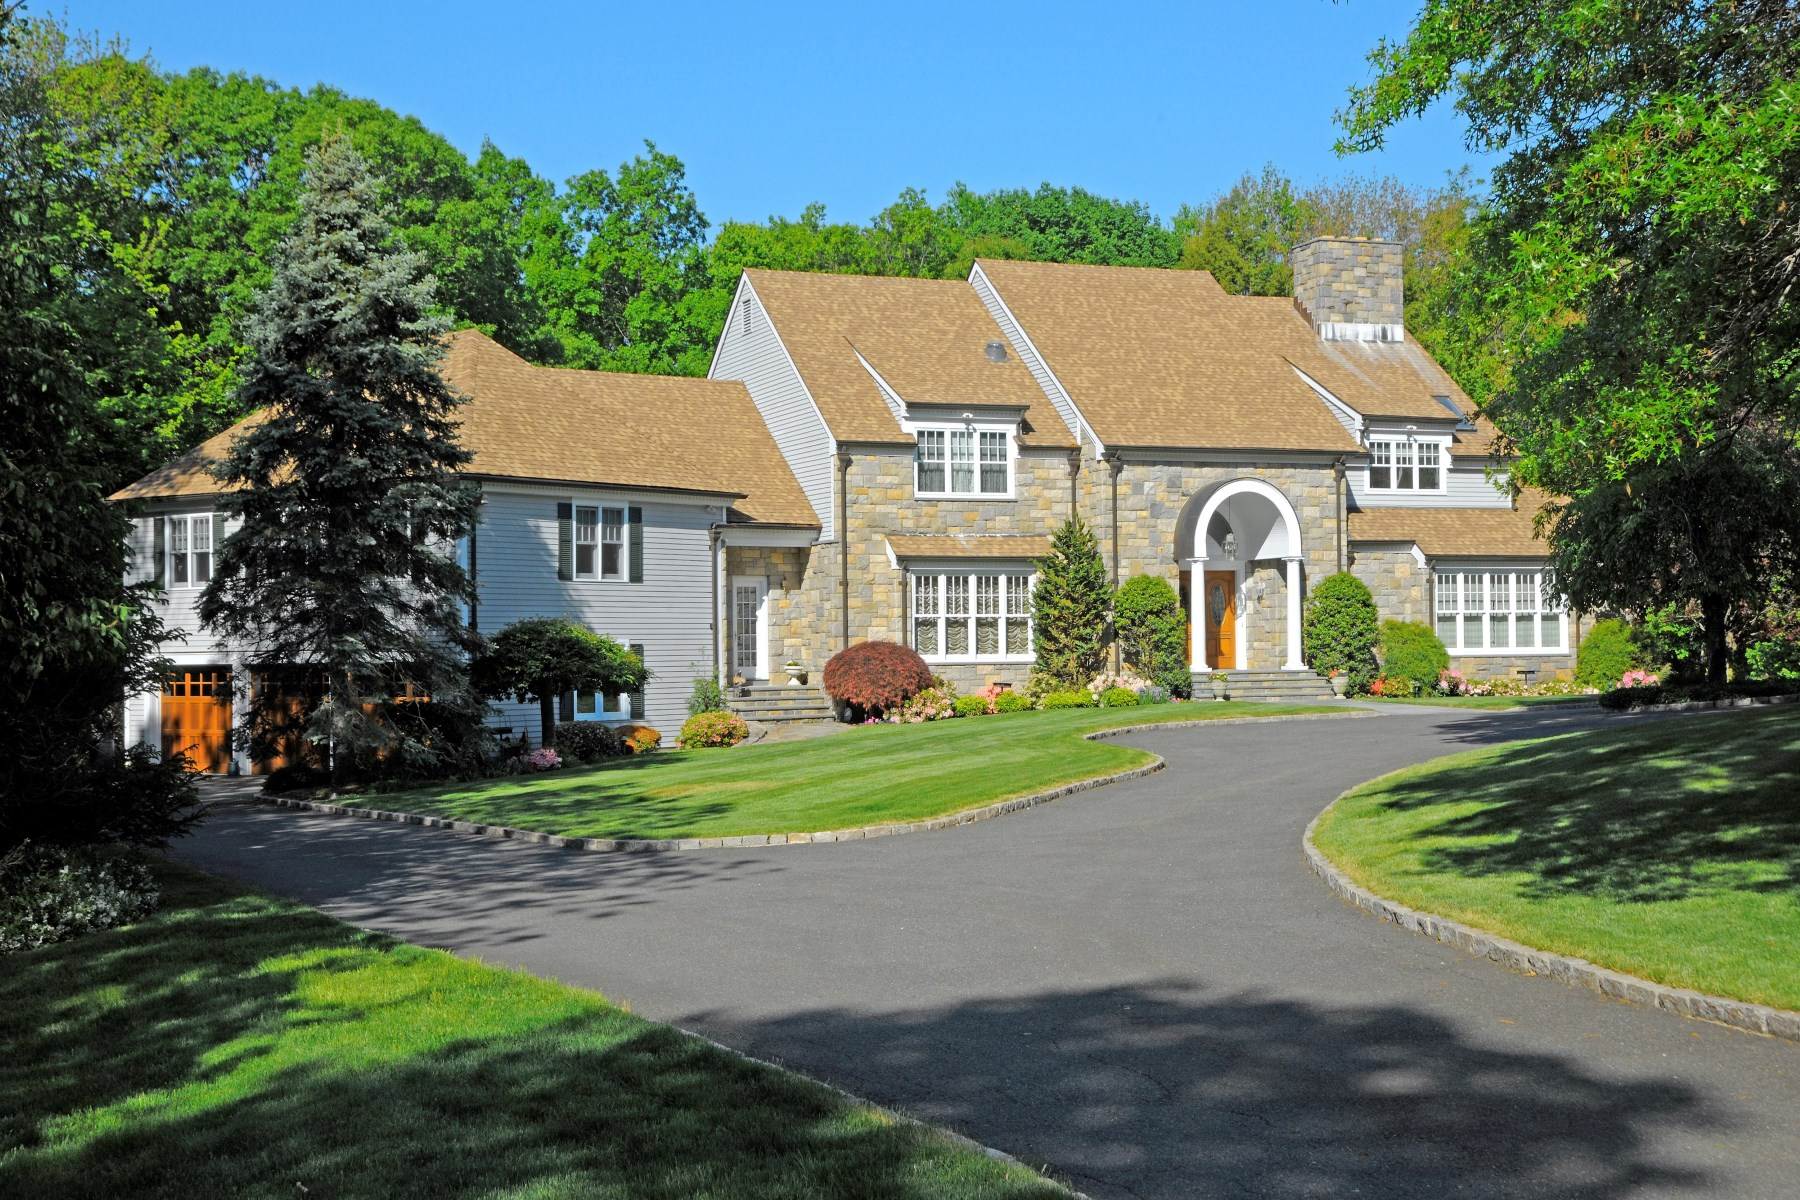 Single Family Home for Sale at Lakeside Round Hill Road Residence 328 Round Hill Road Greenwich, Connecticut 06831 United States